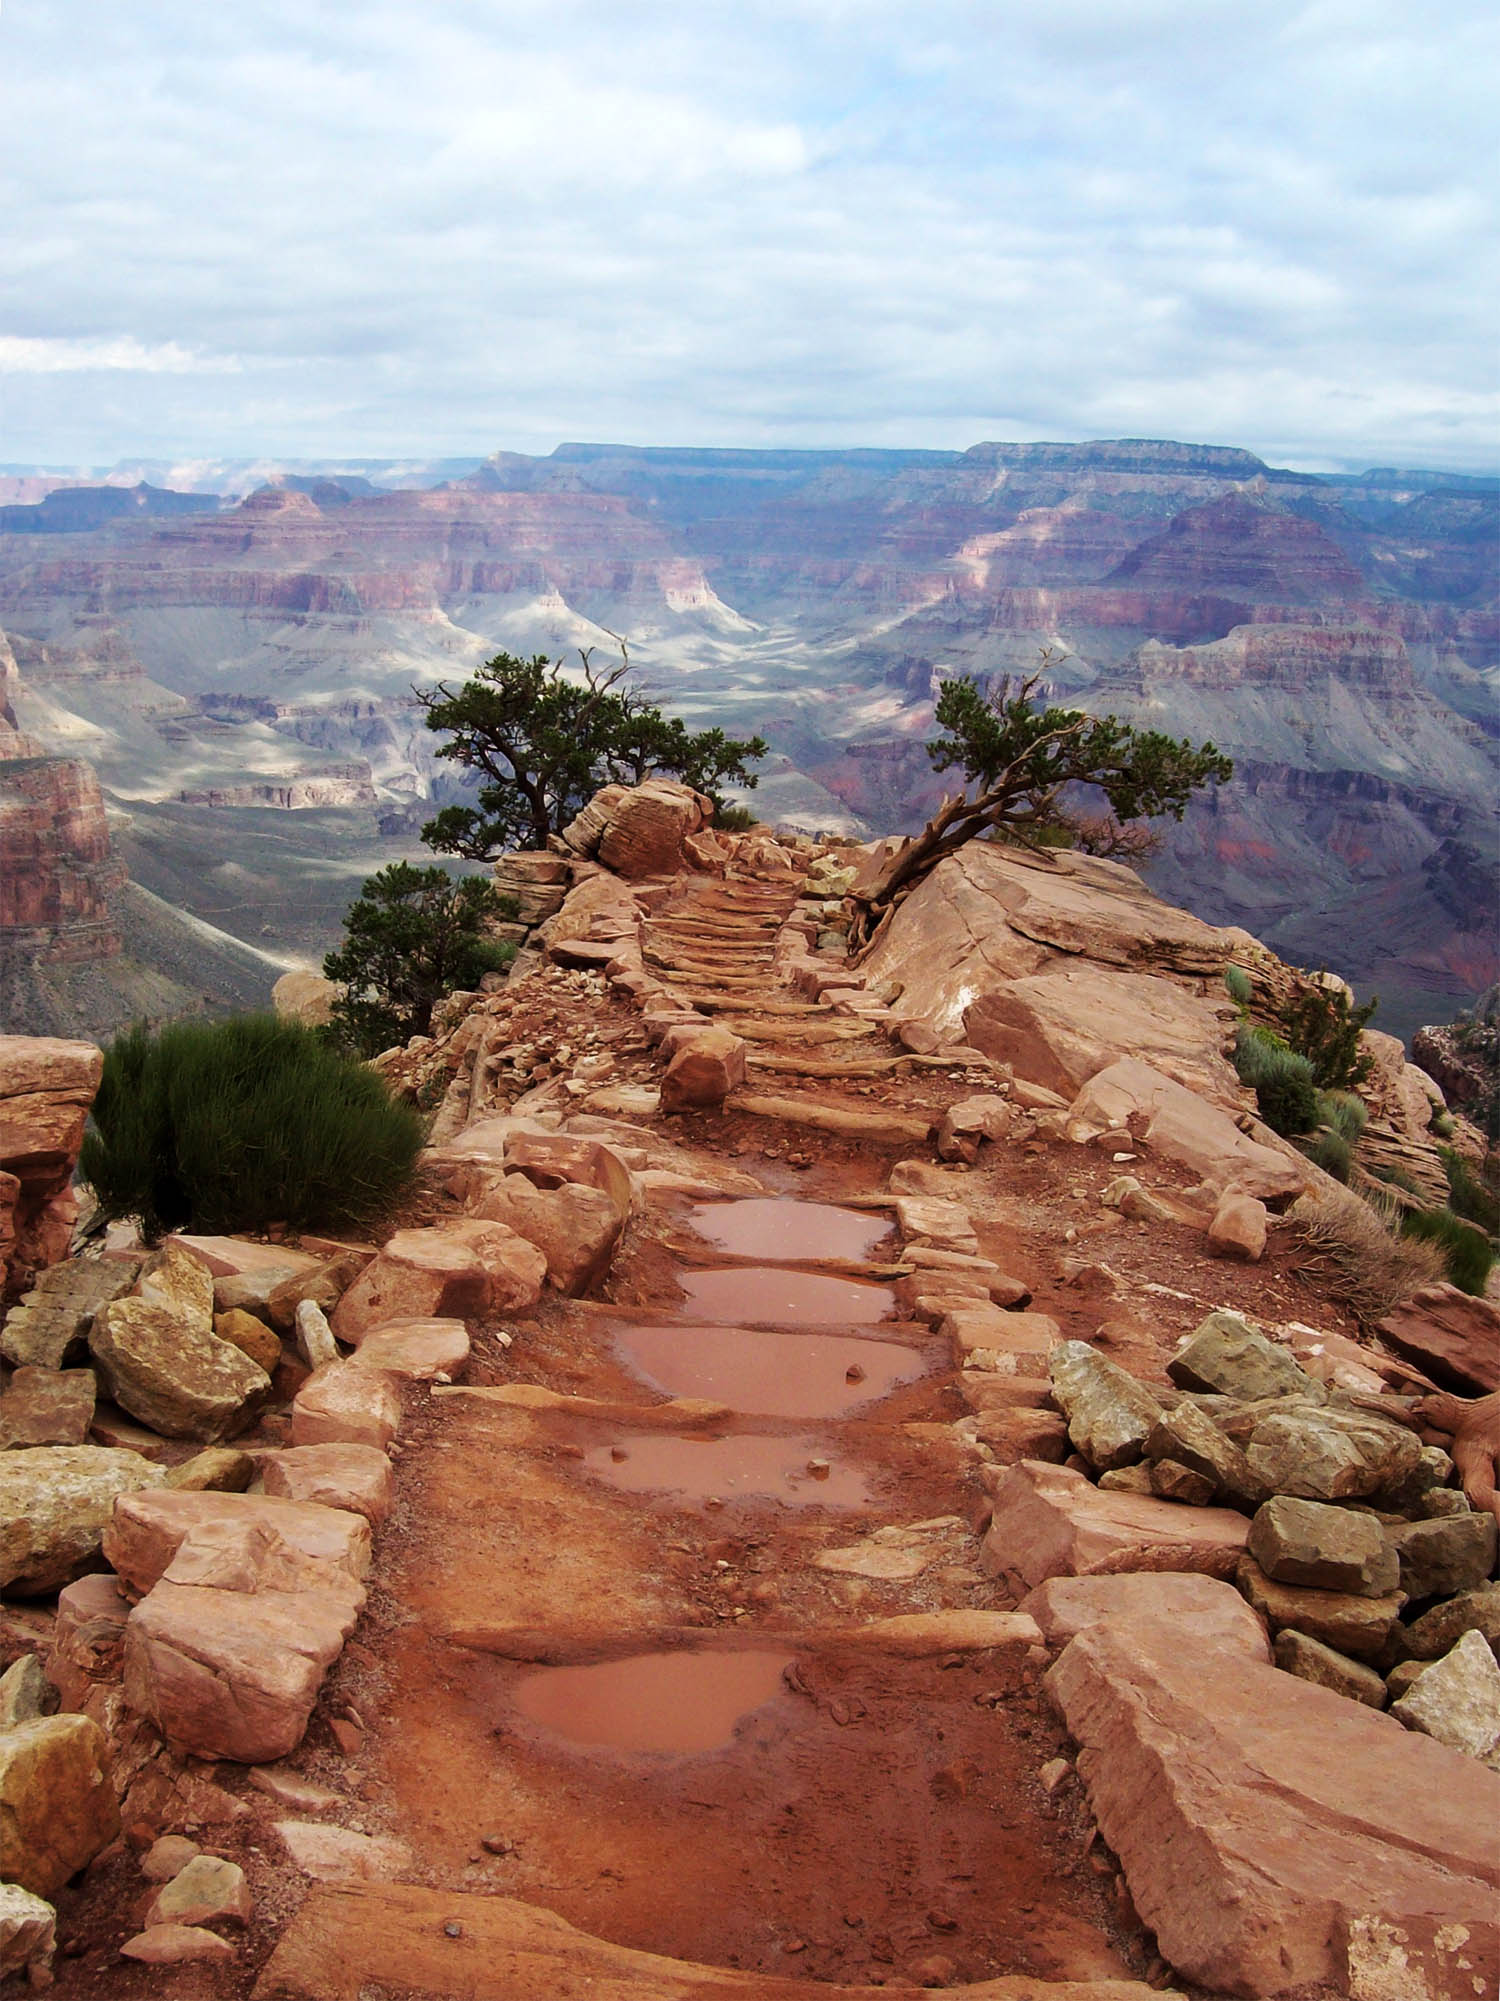 // The Grand Canyon